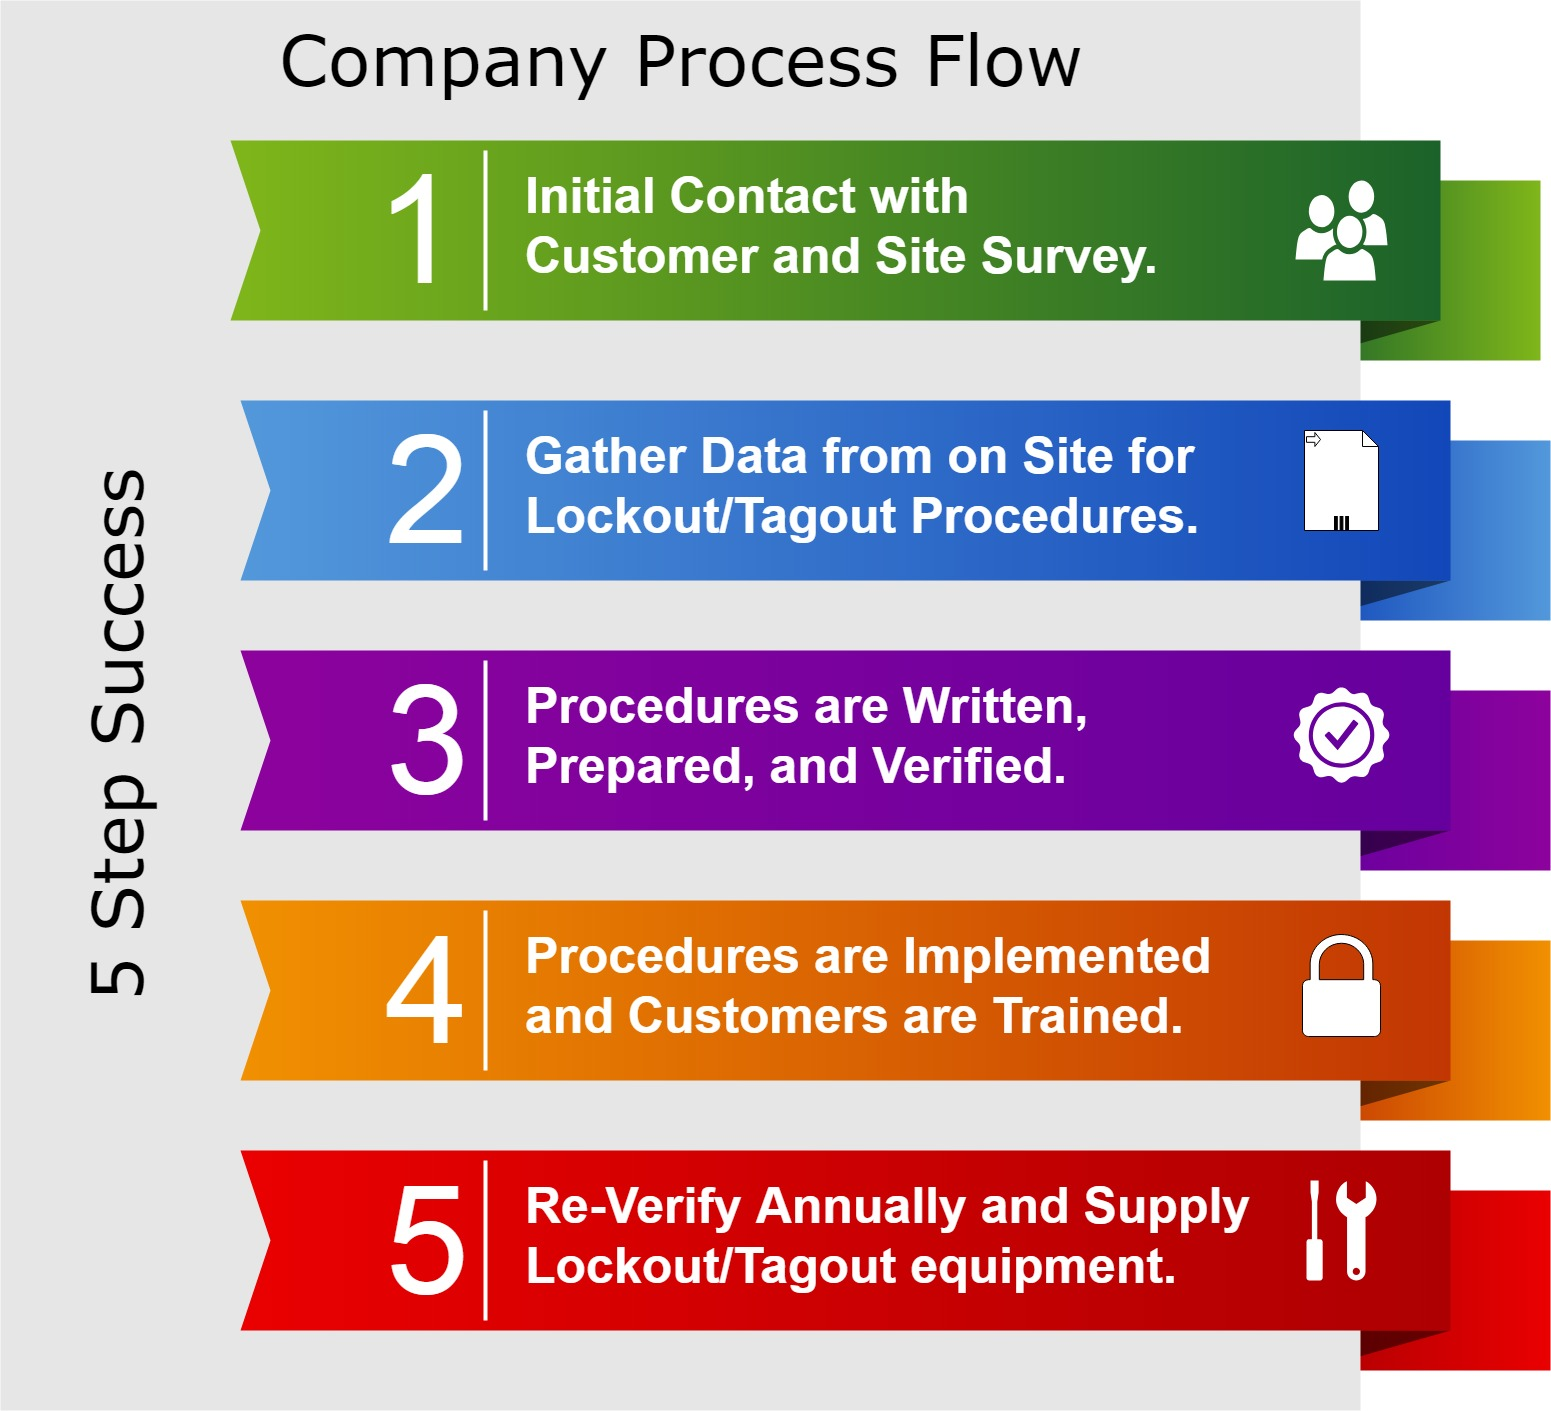 hight resolution of our process for implimenting procedures